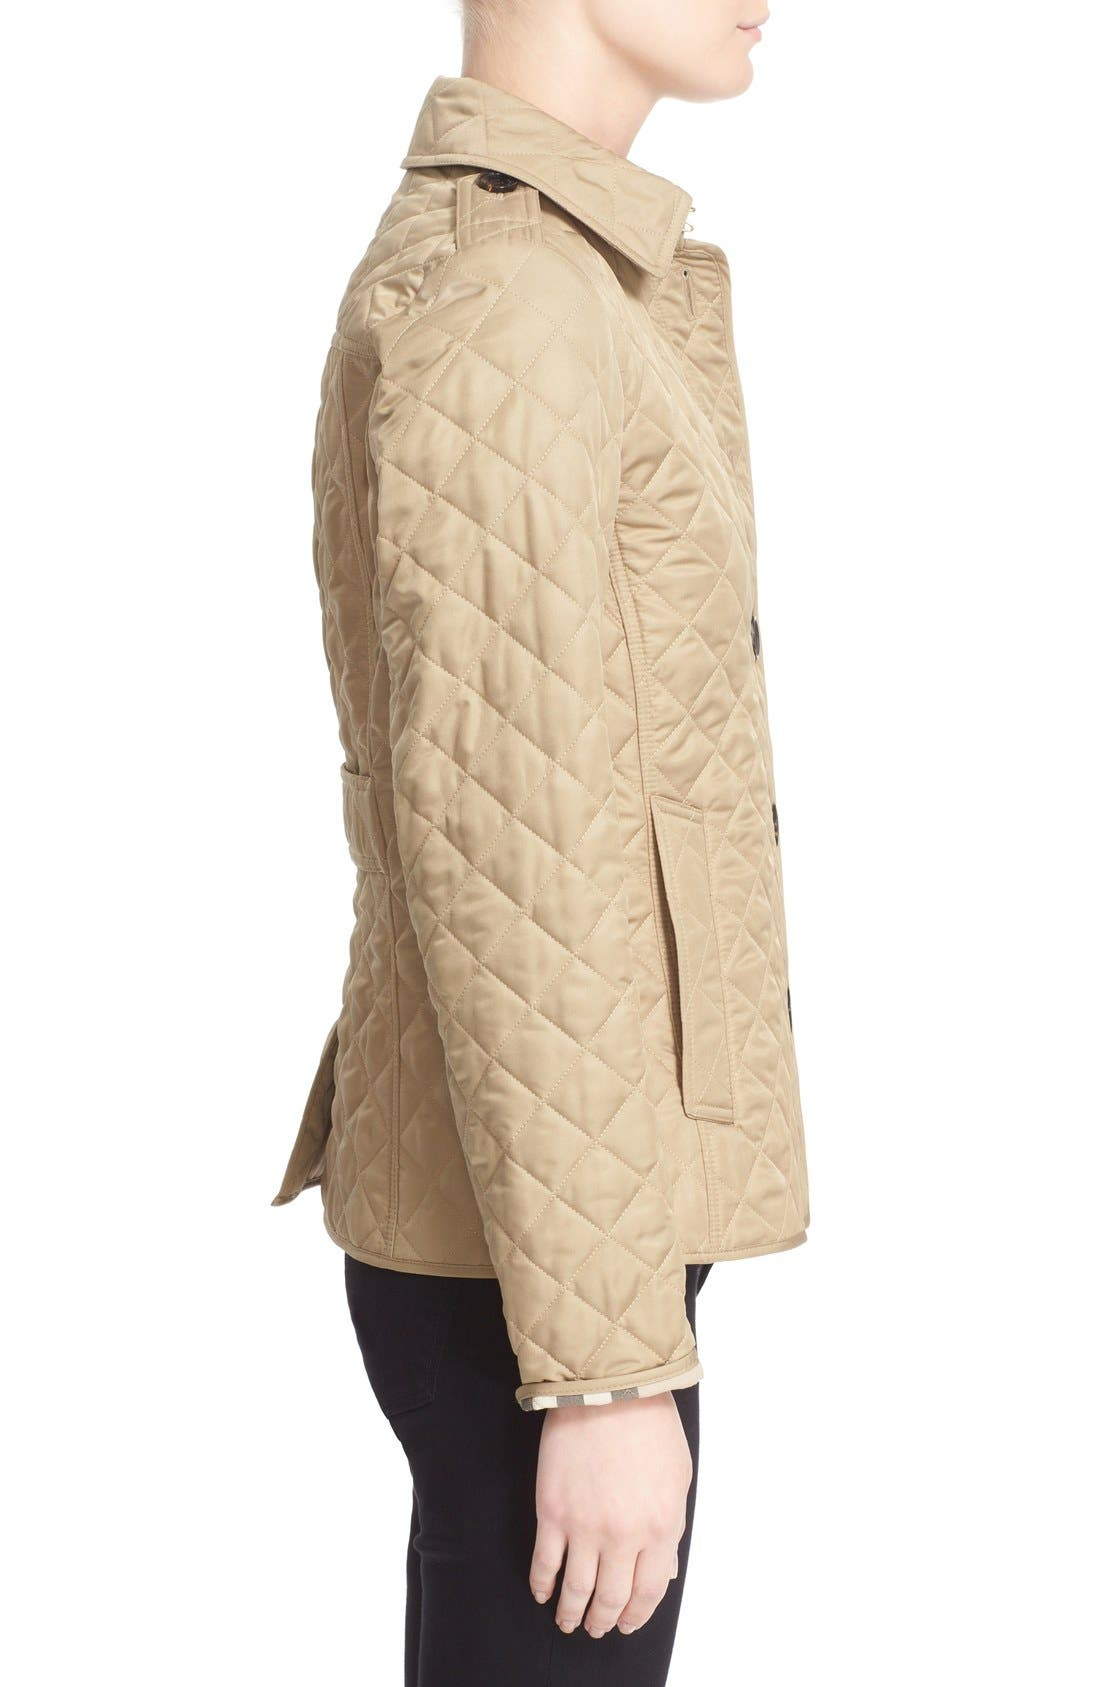 Ashurst Quilted Jacket,                             Alternate thumbnail 4, color,                             270